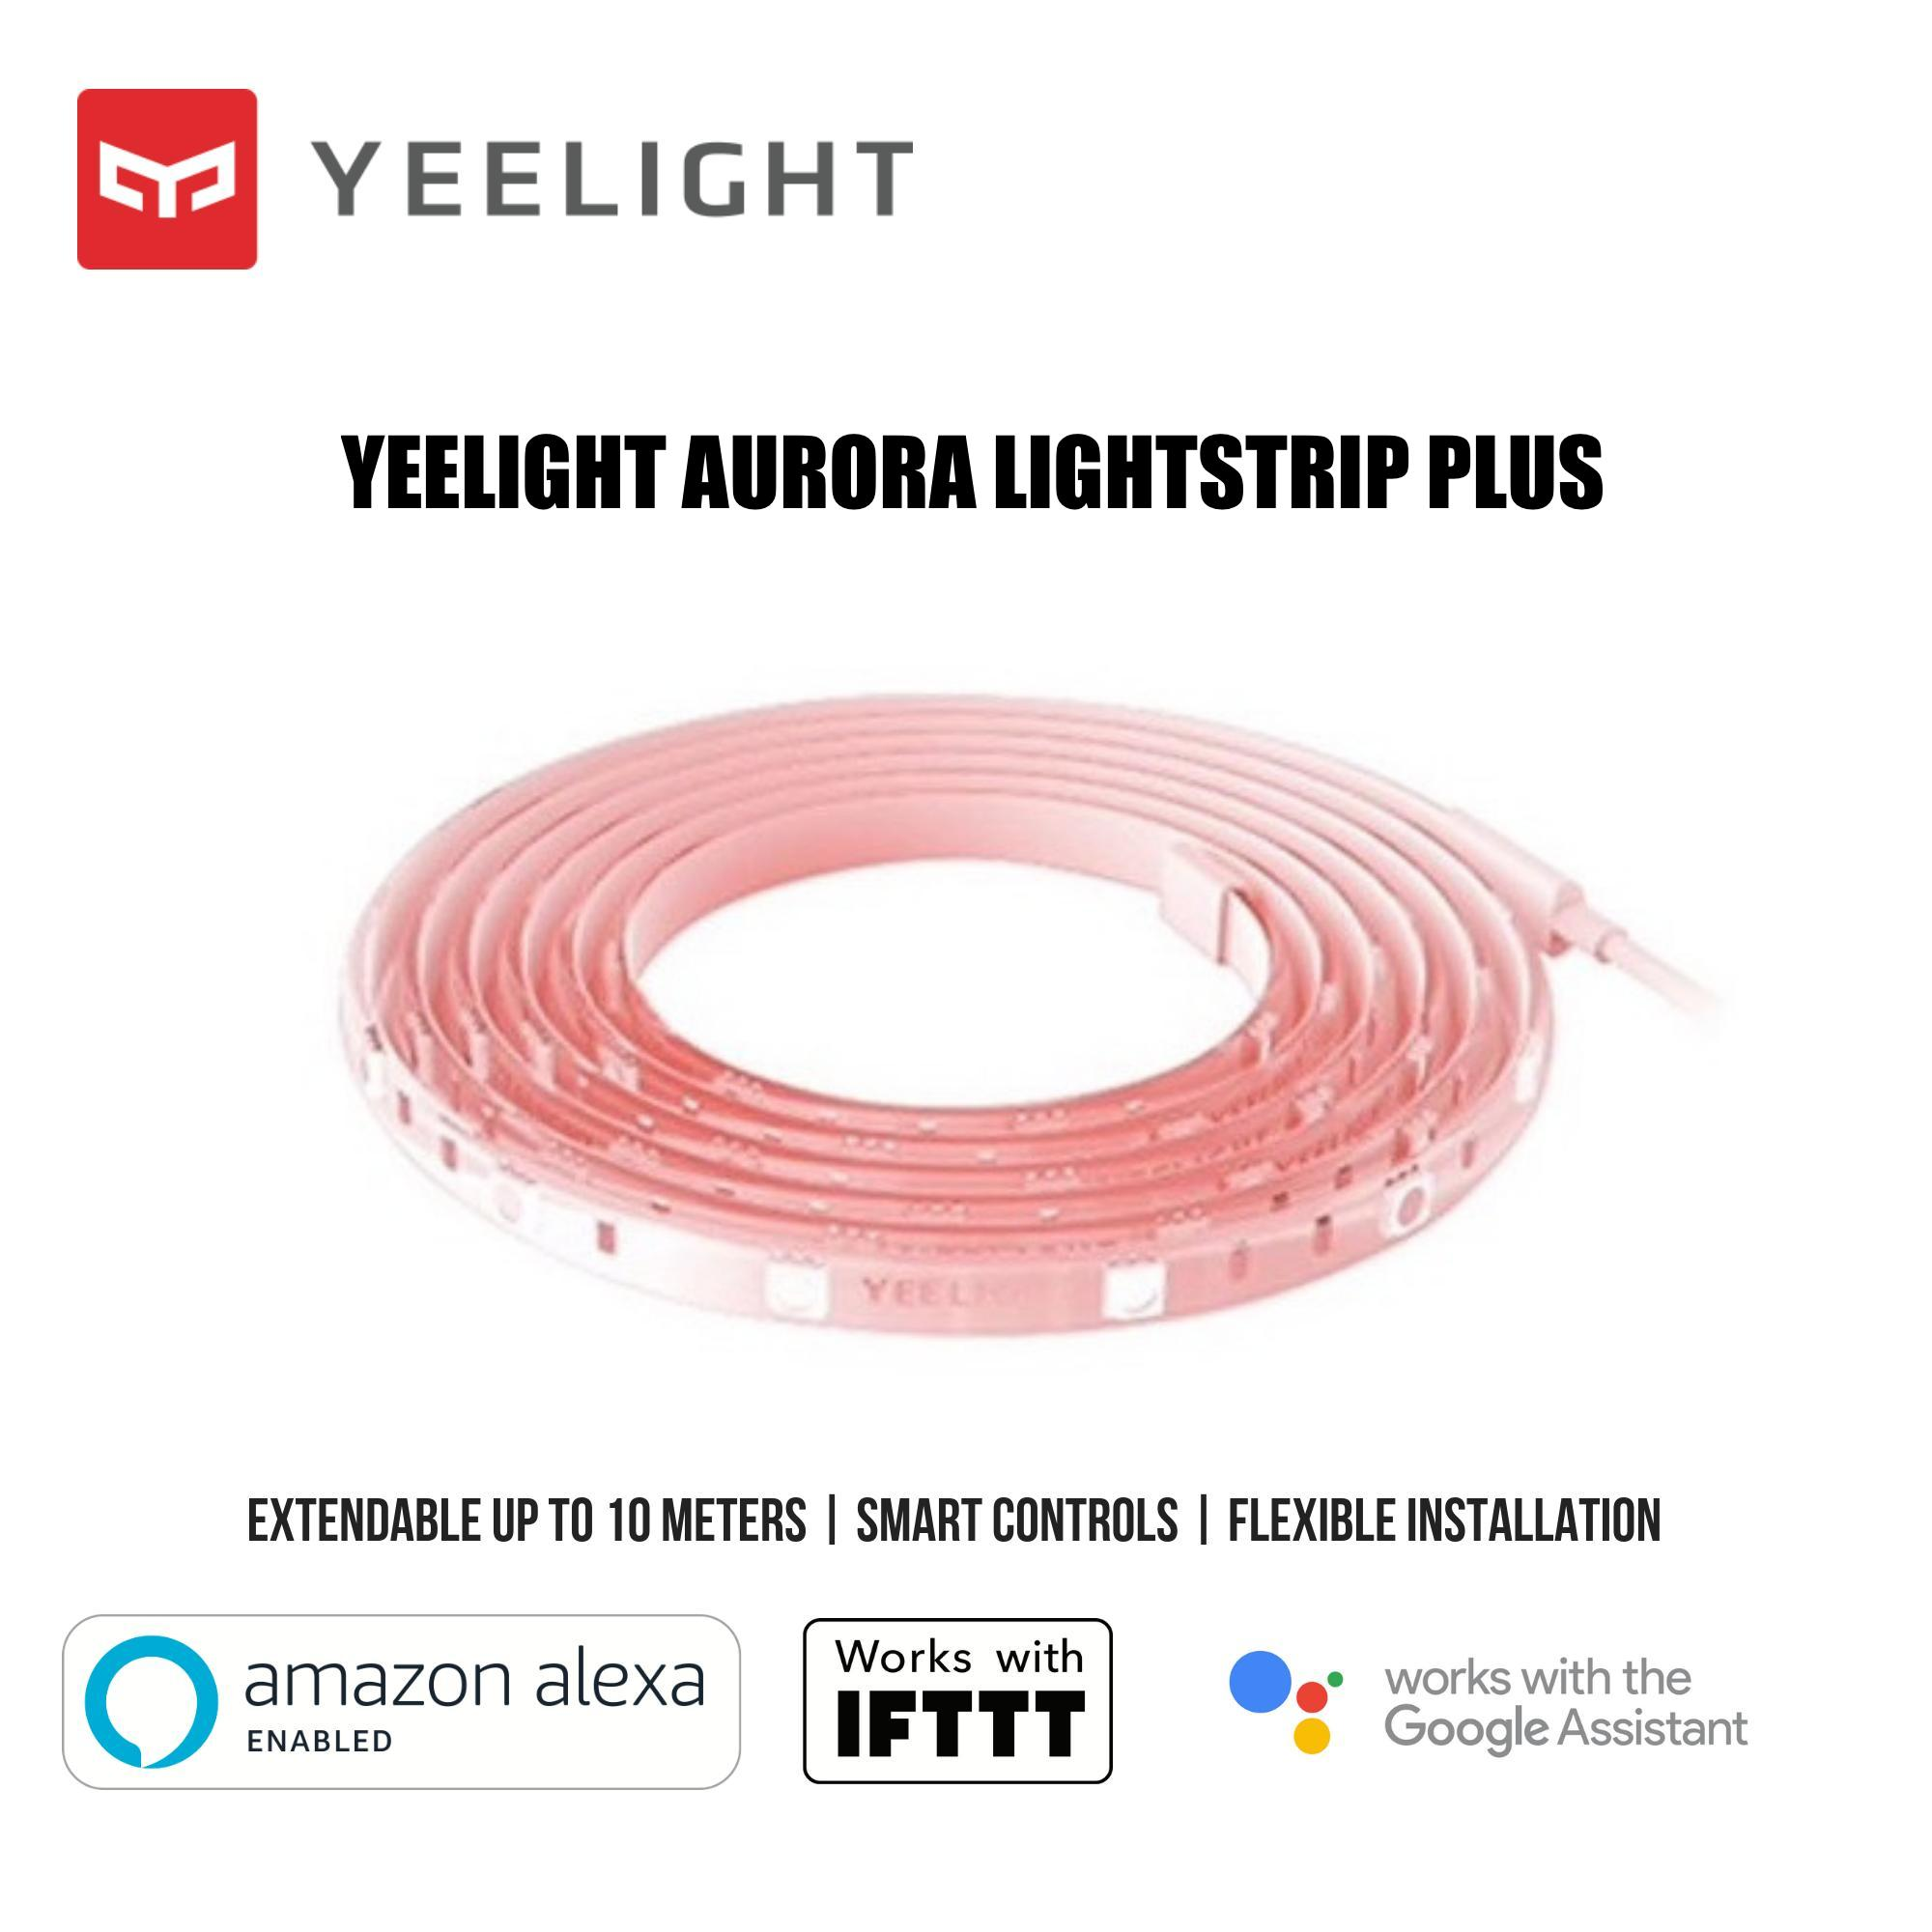 Yeelight Aurora Lightstrip Plus (YLDD04YL) - US Plug